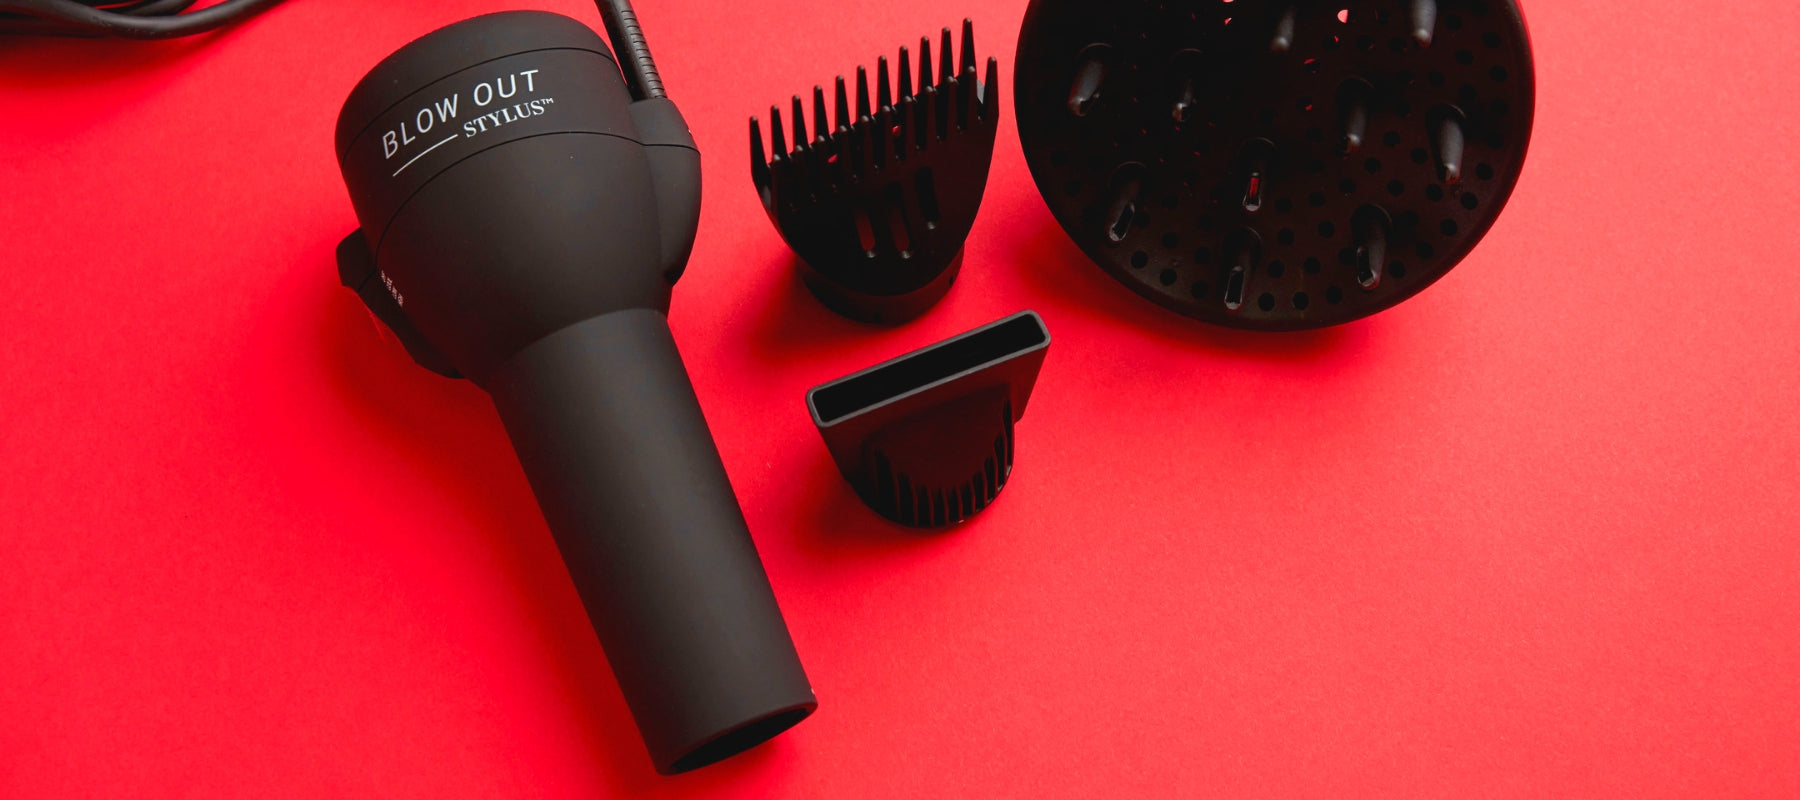 FHI Heat Platform Blowout Hair Dryer